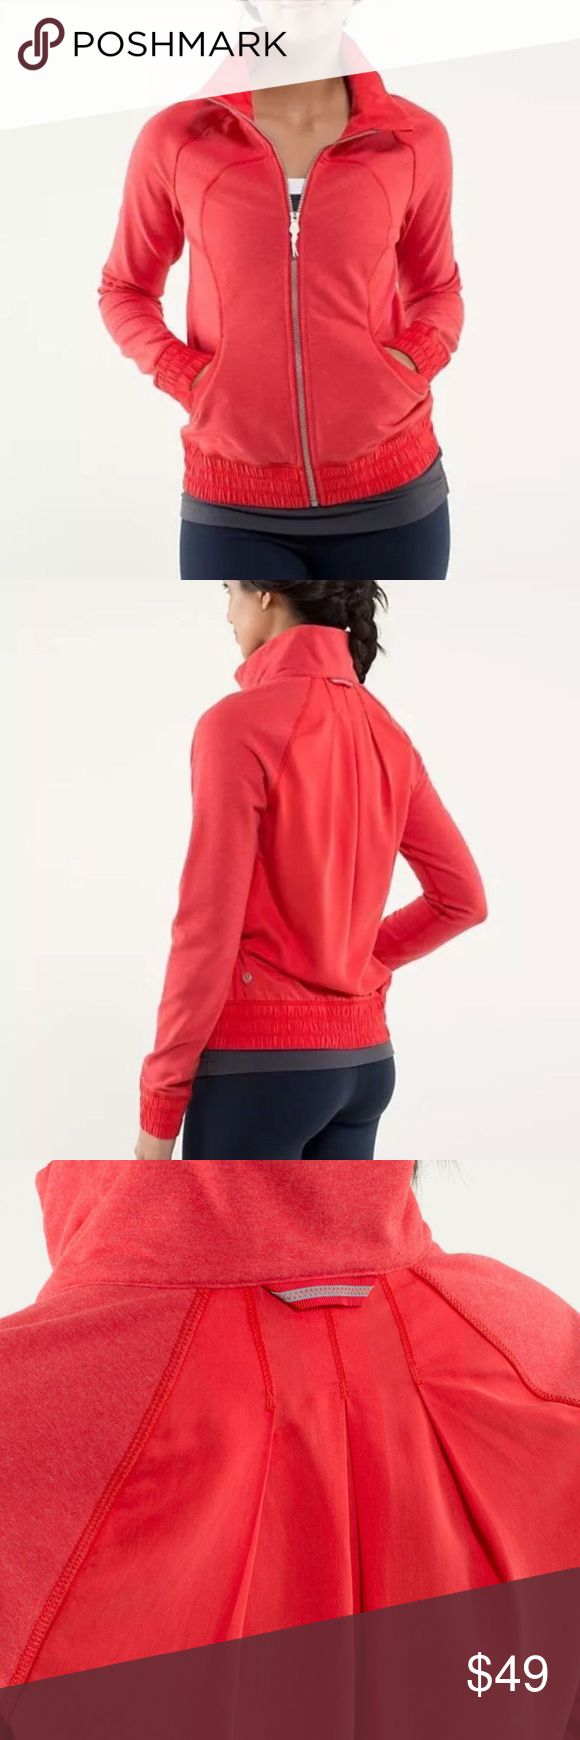 Lululemon Blissed out jacket 4 red coral define Size 4, pretty much perfect condition. I can't find any signs of wear to mention. Color is Love Red, but it is really two tones and to me seems more coral. lululemon athletica Jackets & Coats Utility Jackets